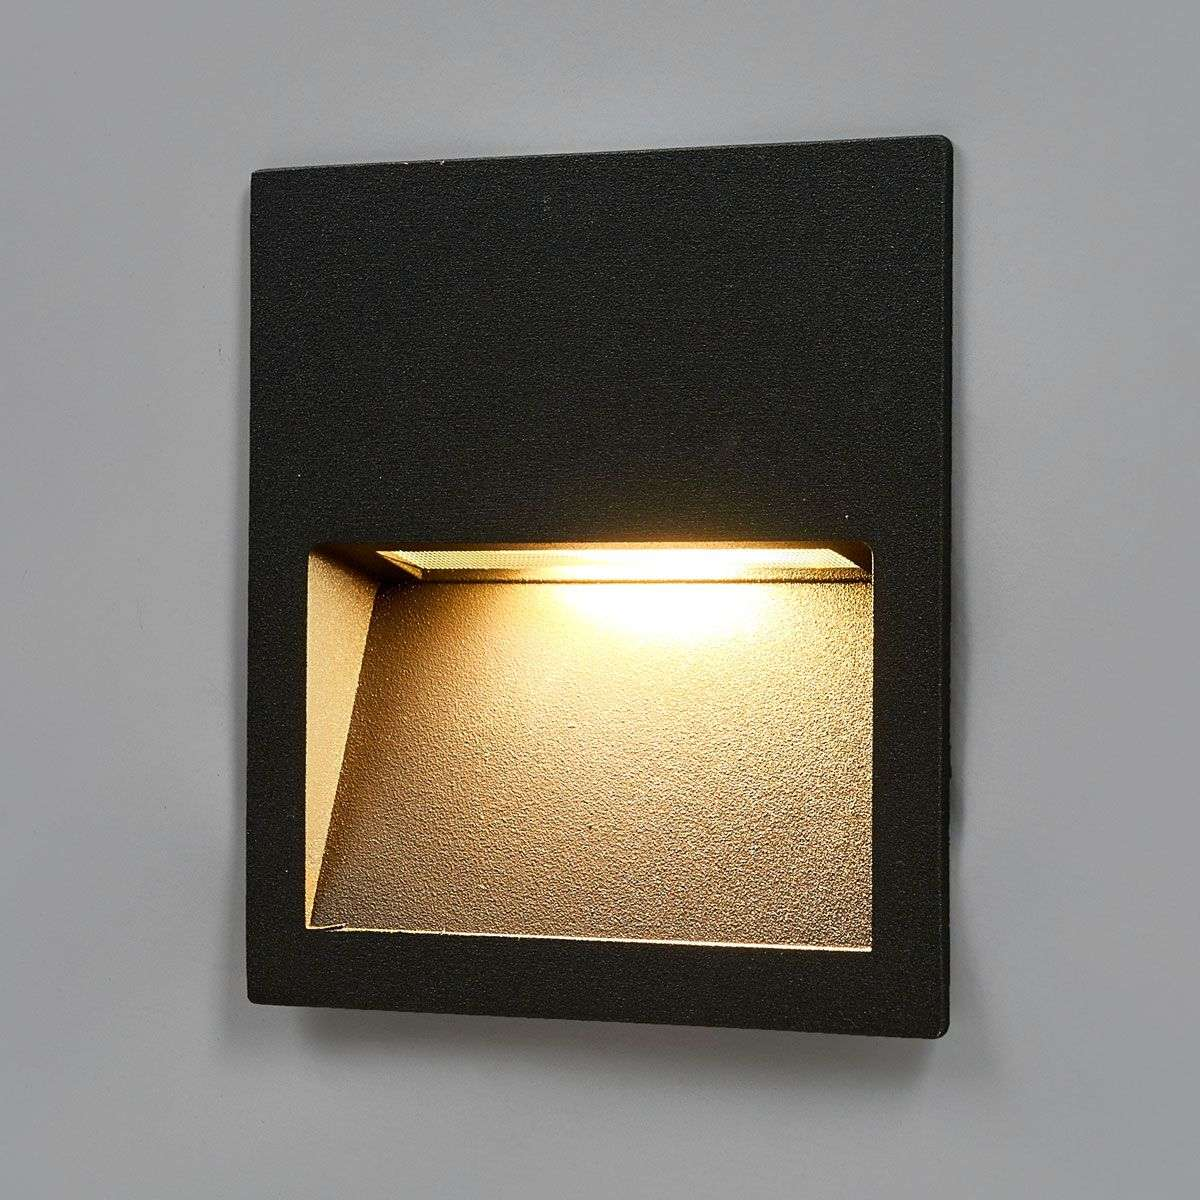 Square led recessed wall light loya for outdoors lights square led recessed wall light loya for outdoors 9969038 32 workwithnaturefo